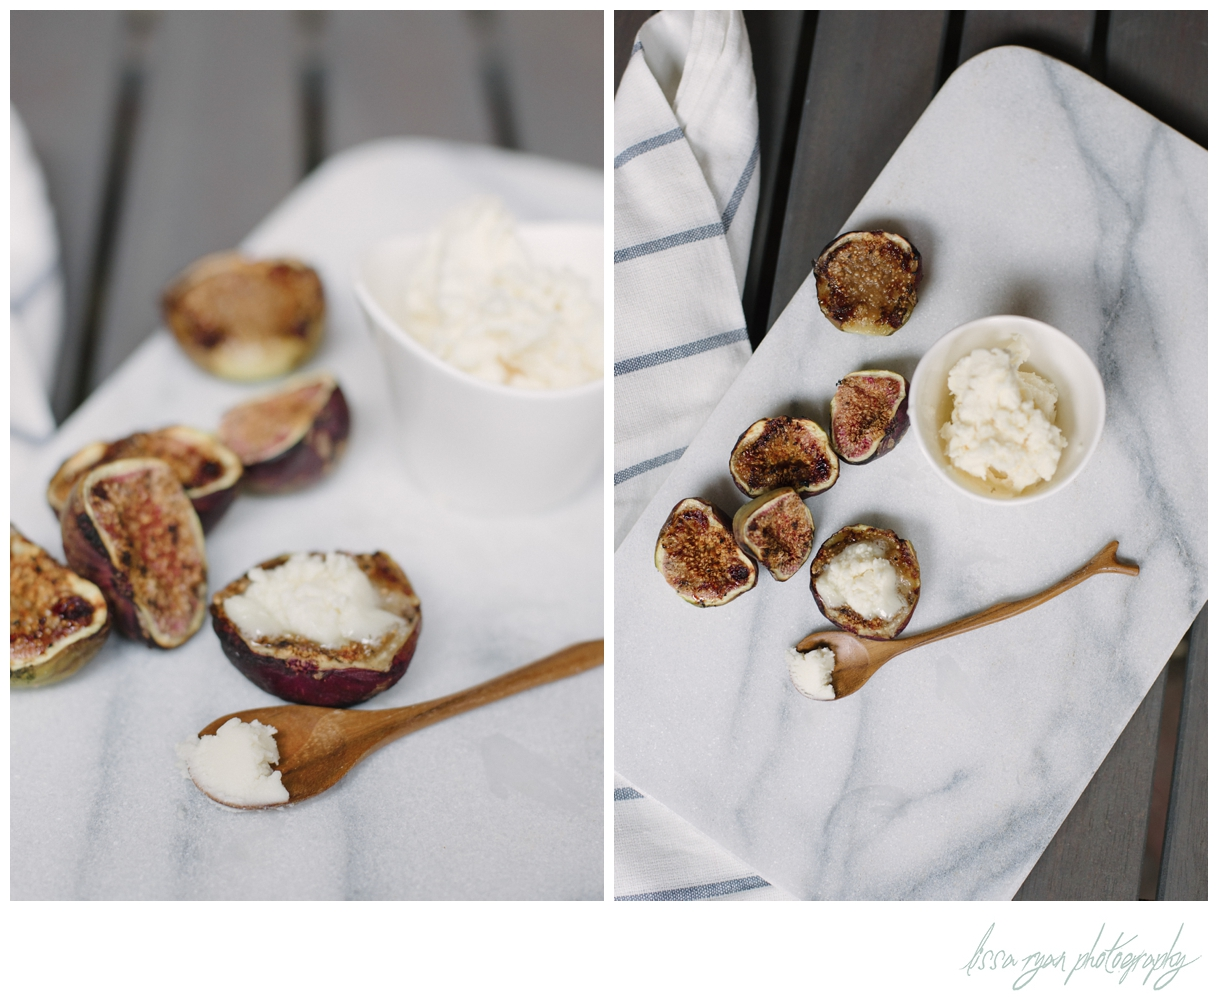 grilled figs with mascarpone Lissa Ryan Photography washington dc food photographer